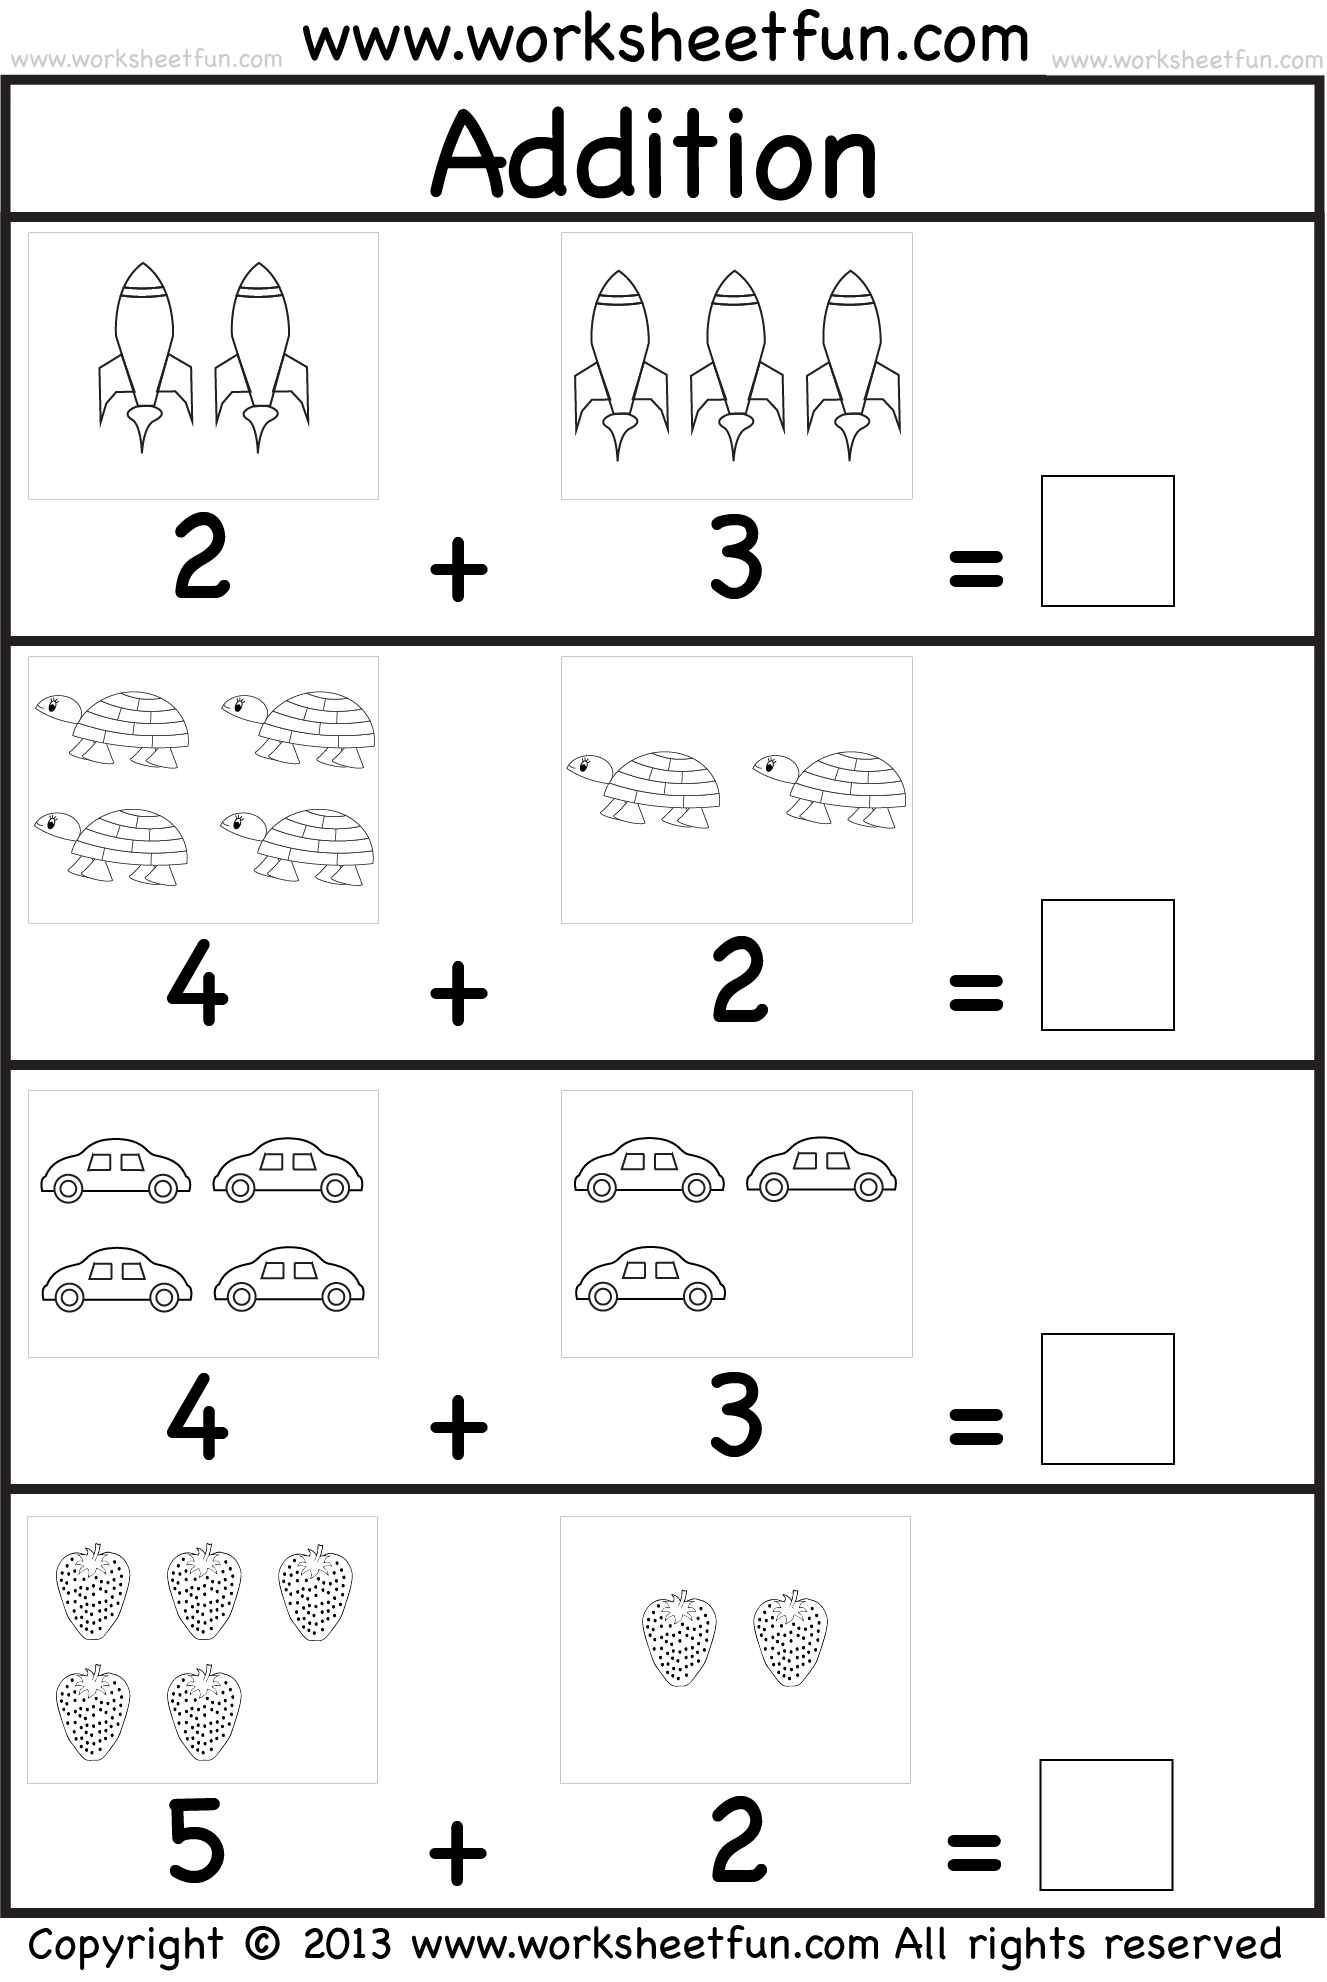 worksheet The Math Worksheet Site addition worksheet this site has great free worksheets for everything from abcs to math